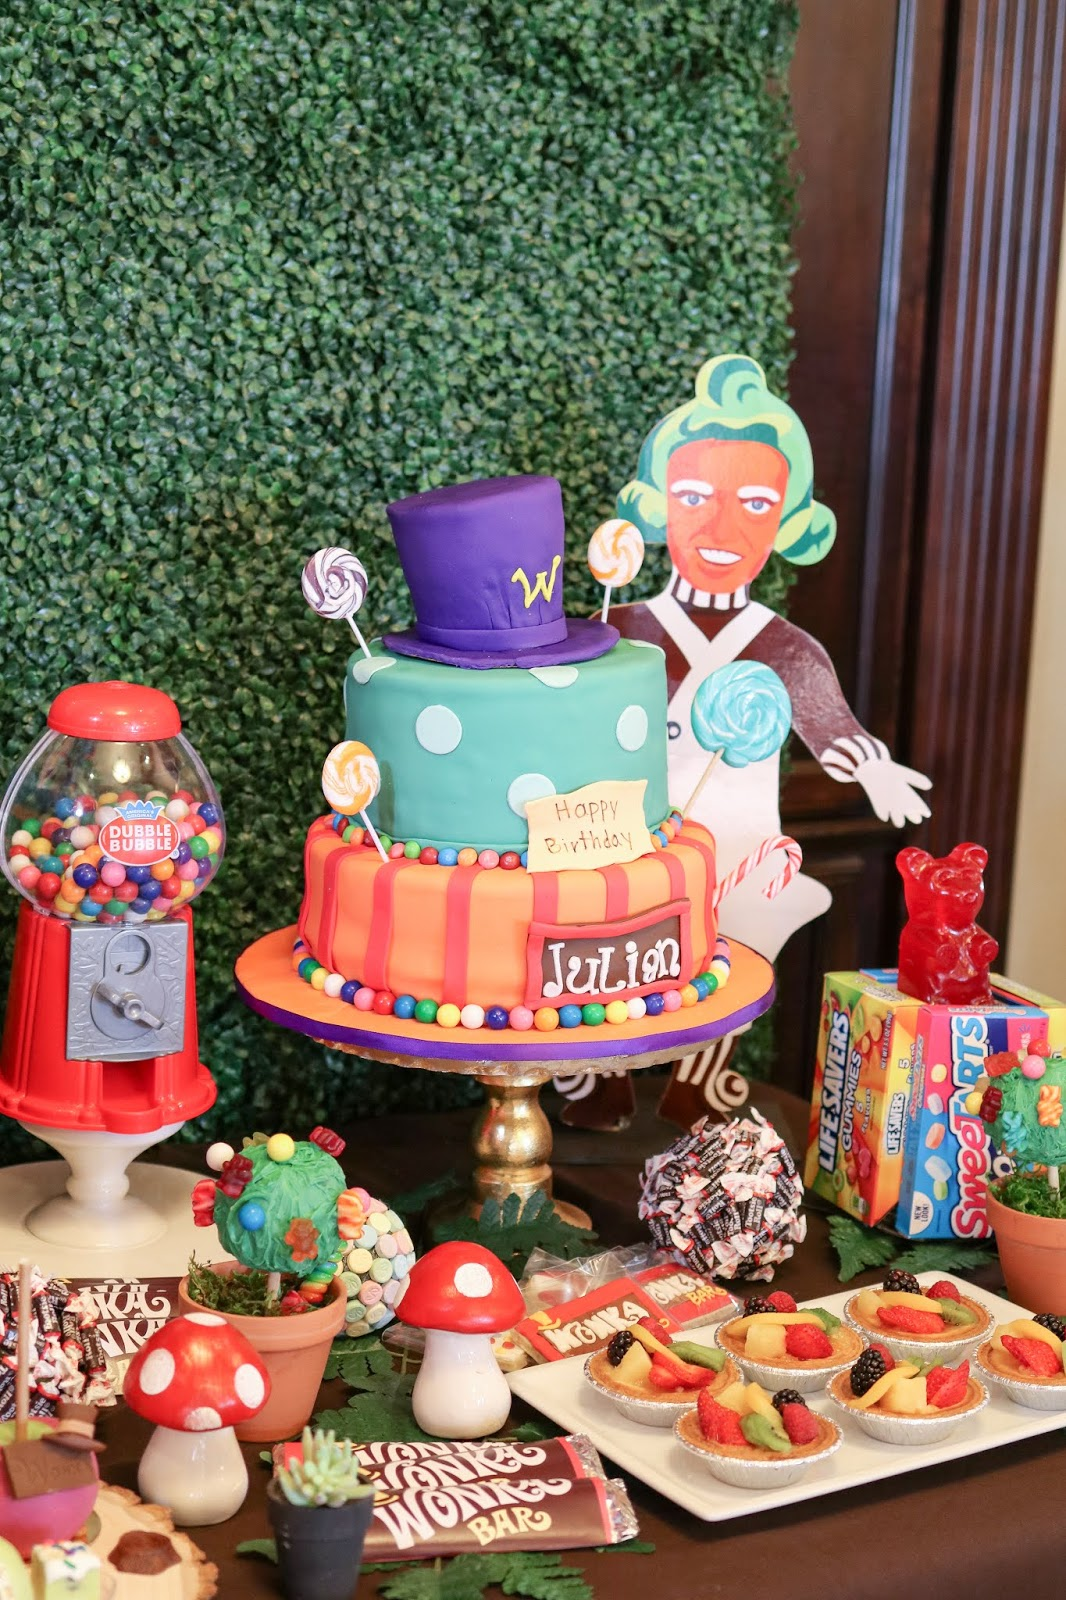 wonka party 3 tier cake, willy wonka cake, wonka cake